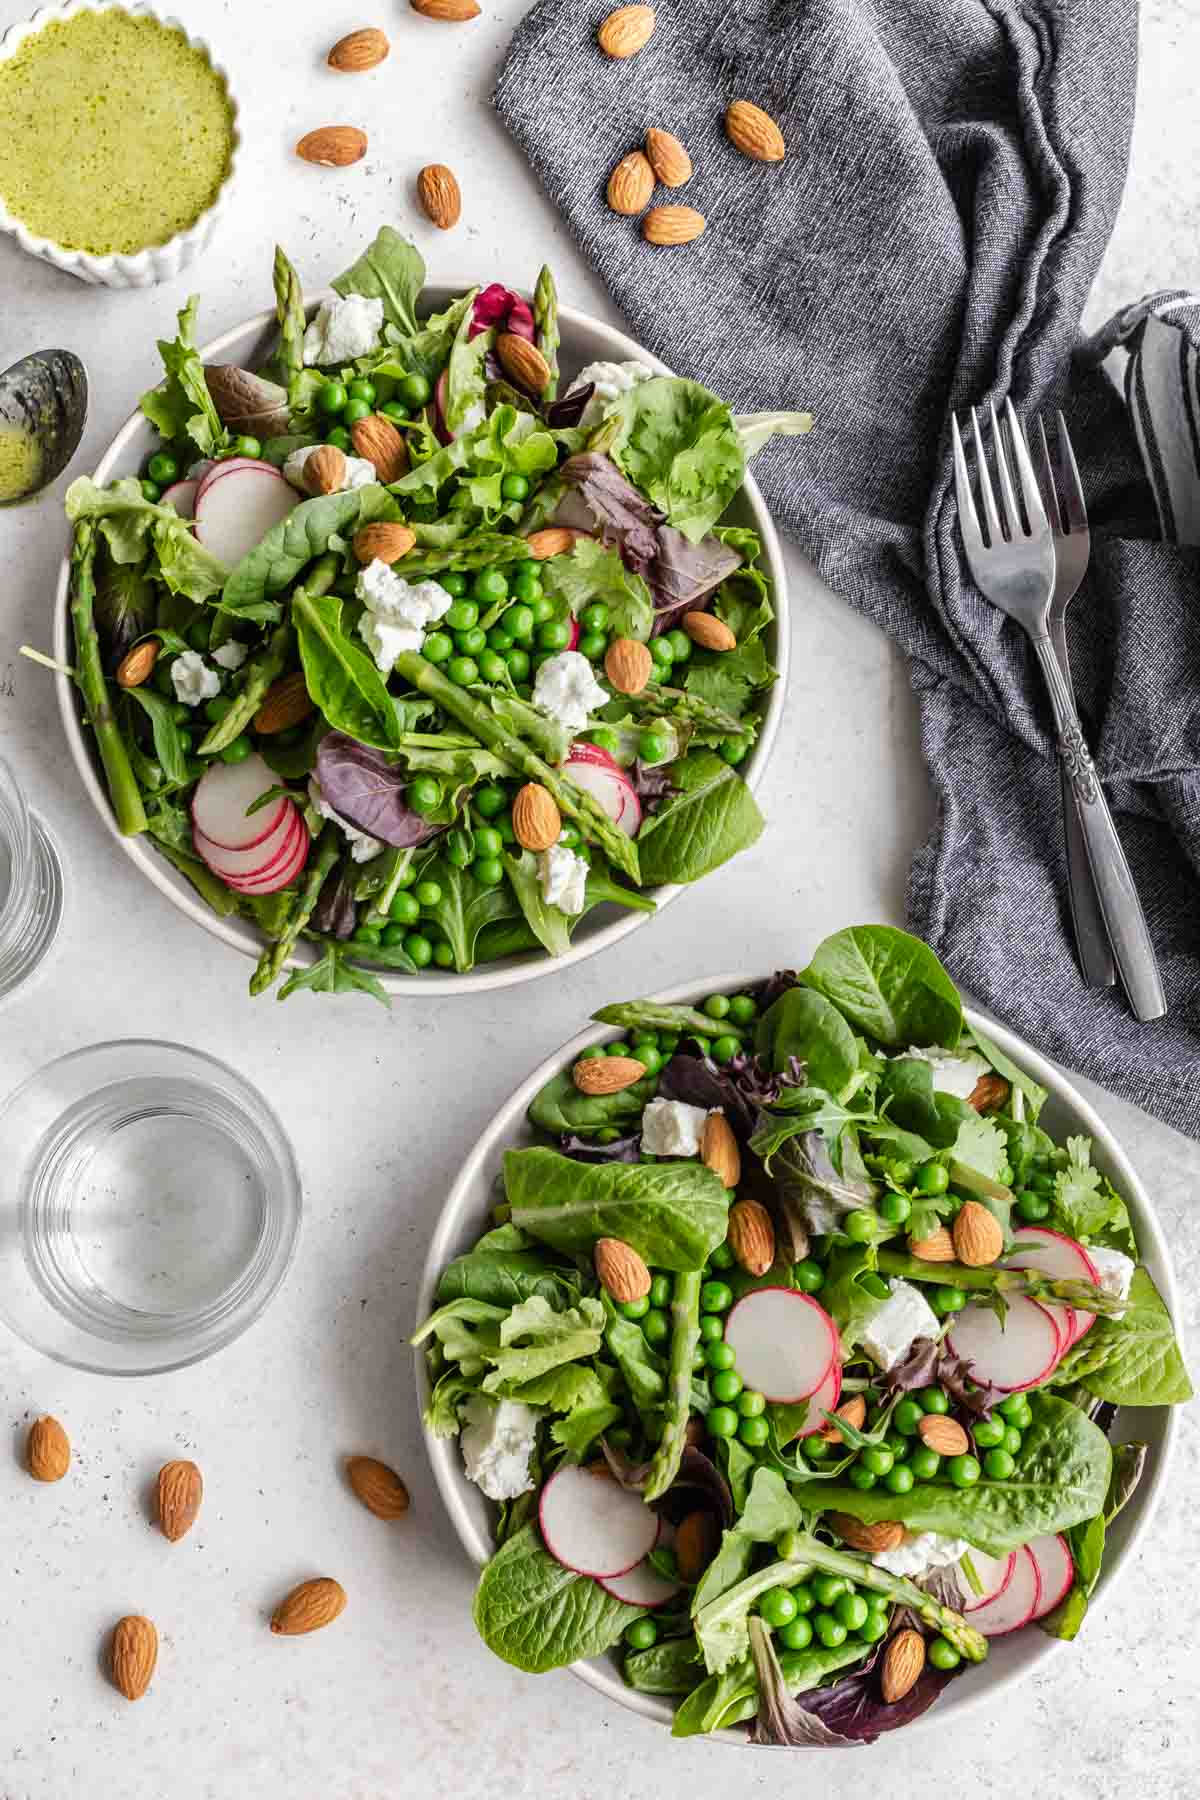 Overhead view of two plates of spring salad.